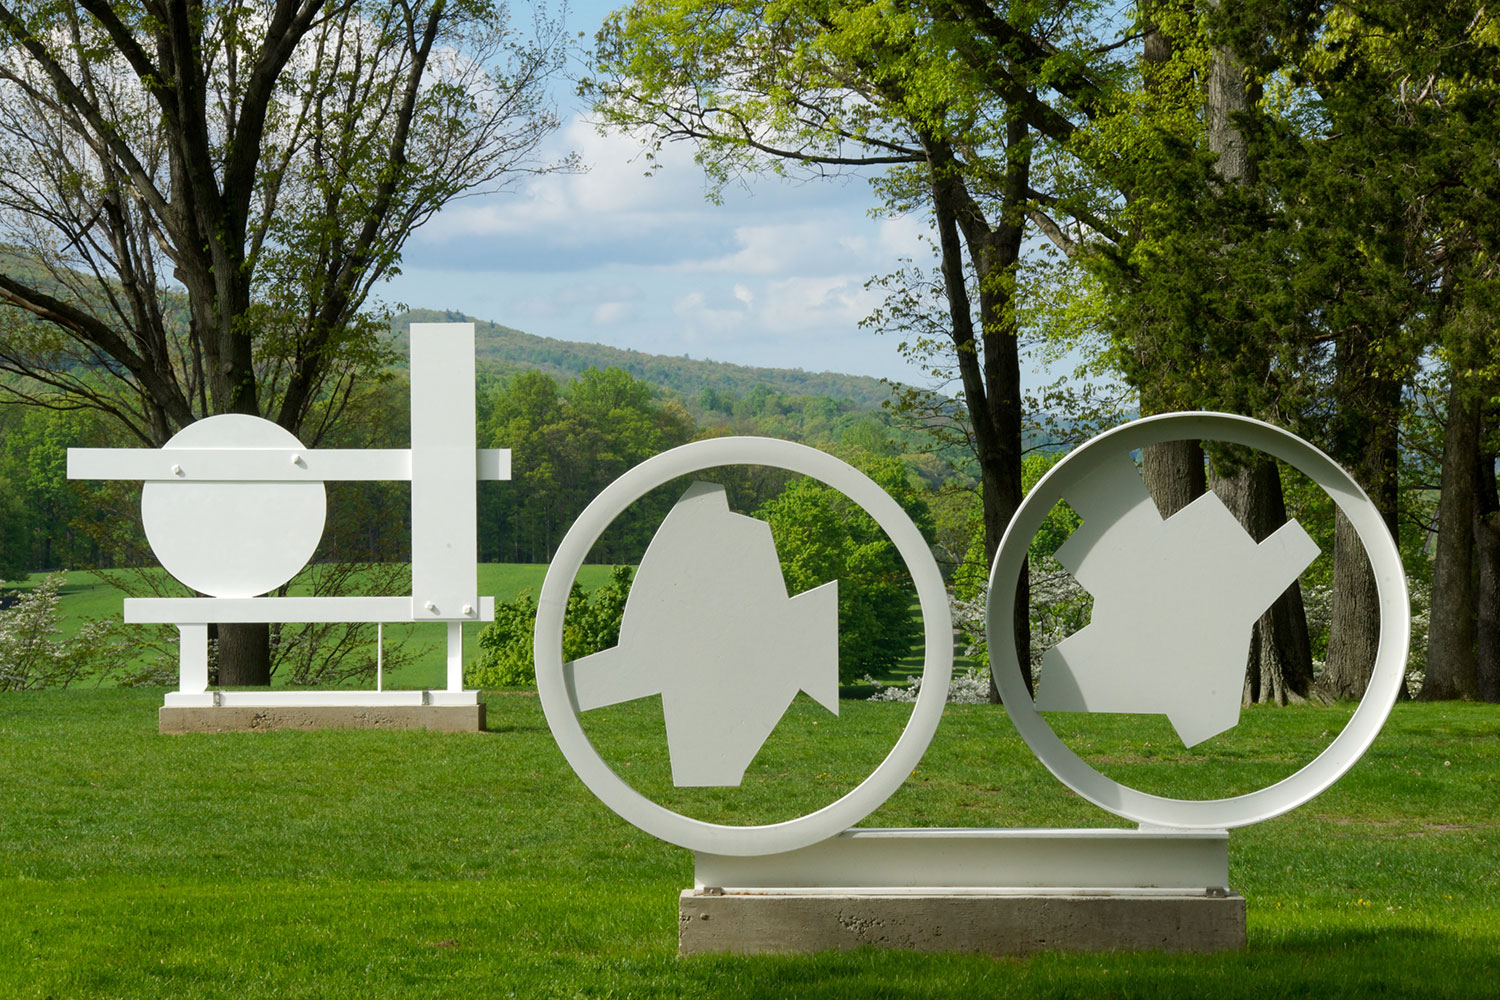 David Smith: The White Sculptures at Storm King Art Center